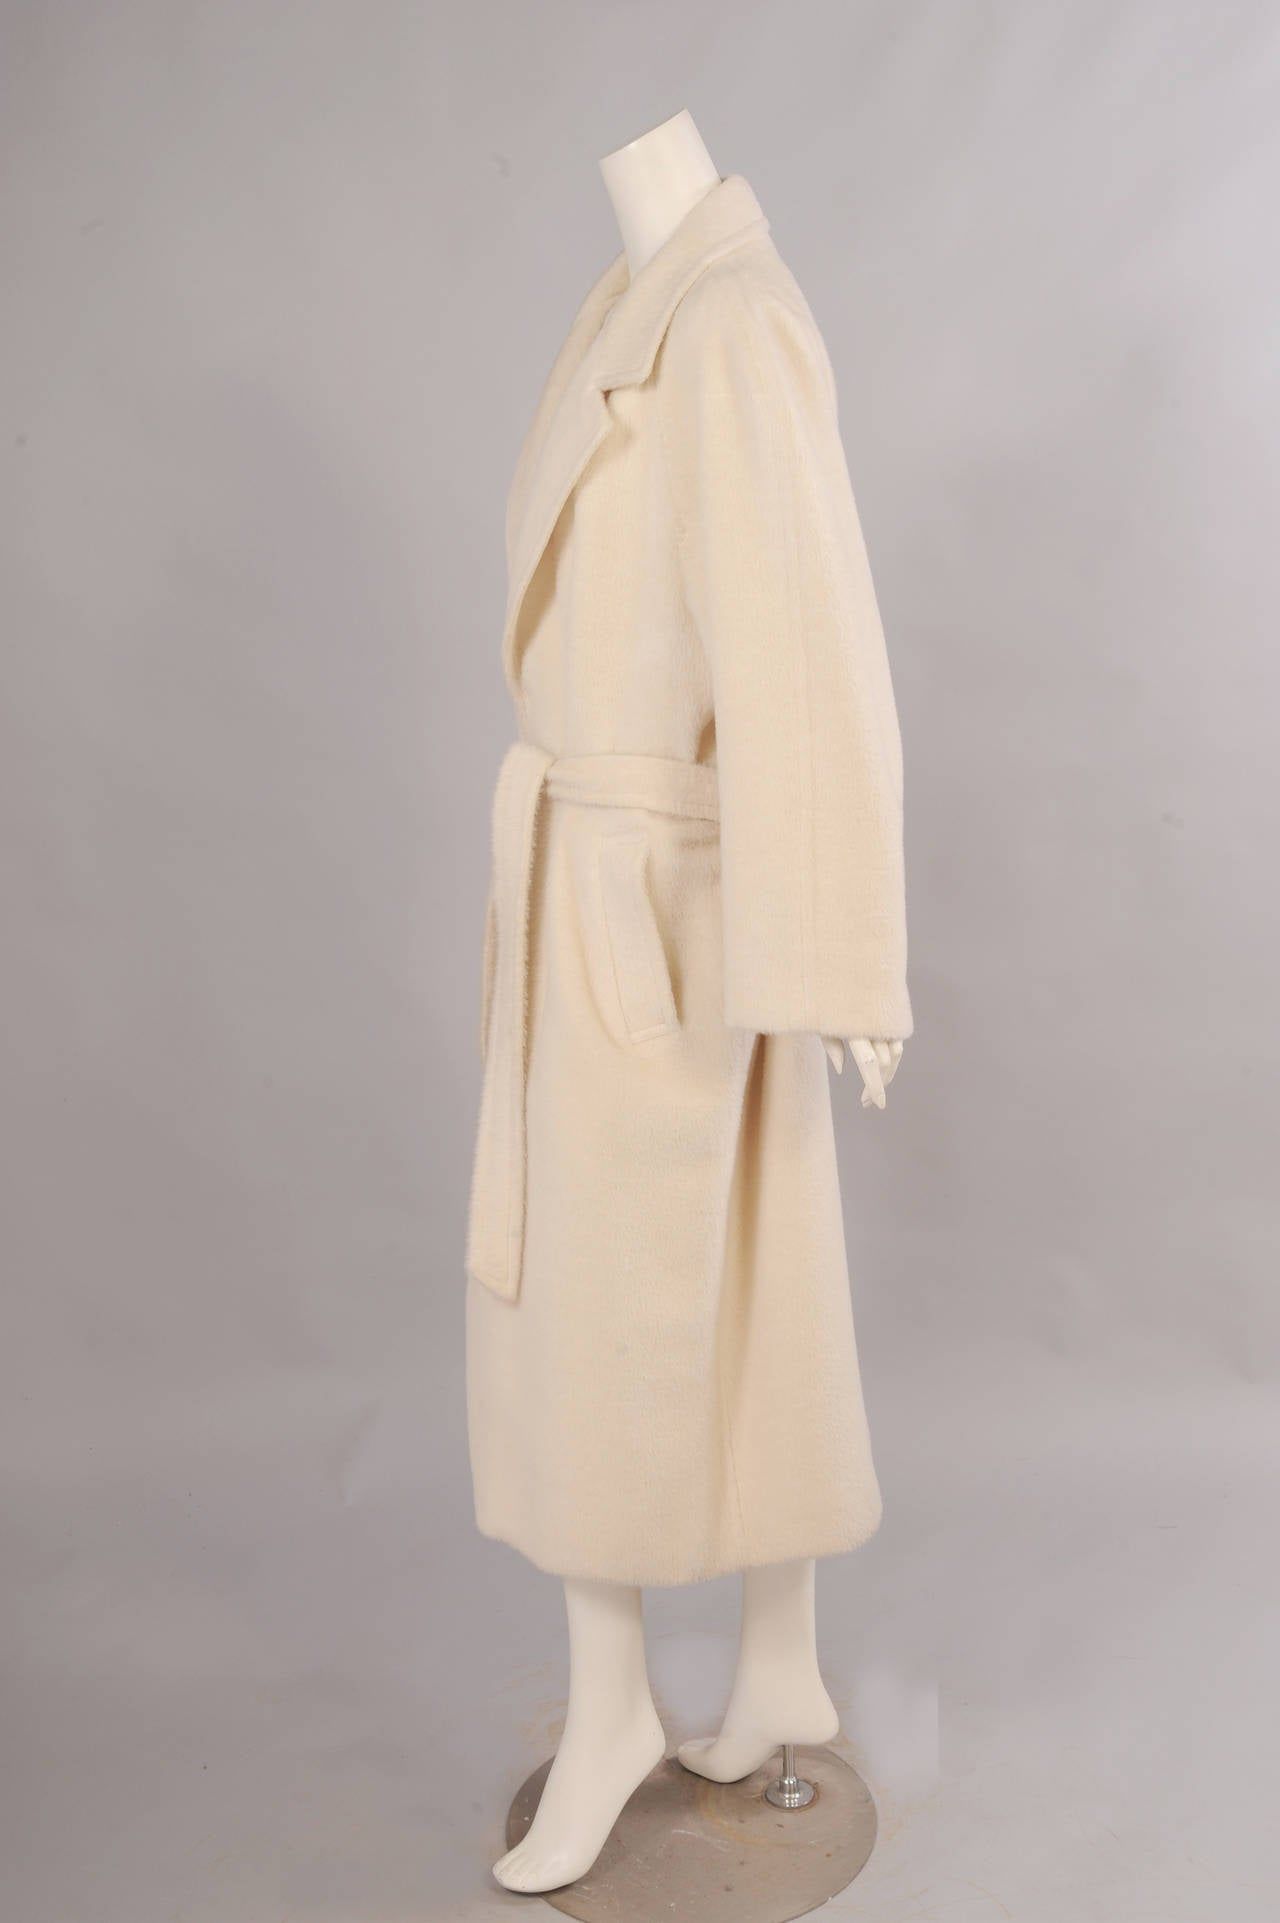 Sulka Cream Alpaca Polo Coat, Never Worn In New never worn Condition For Sale In New Hope, PA